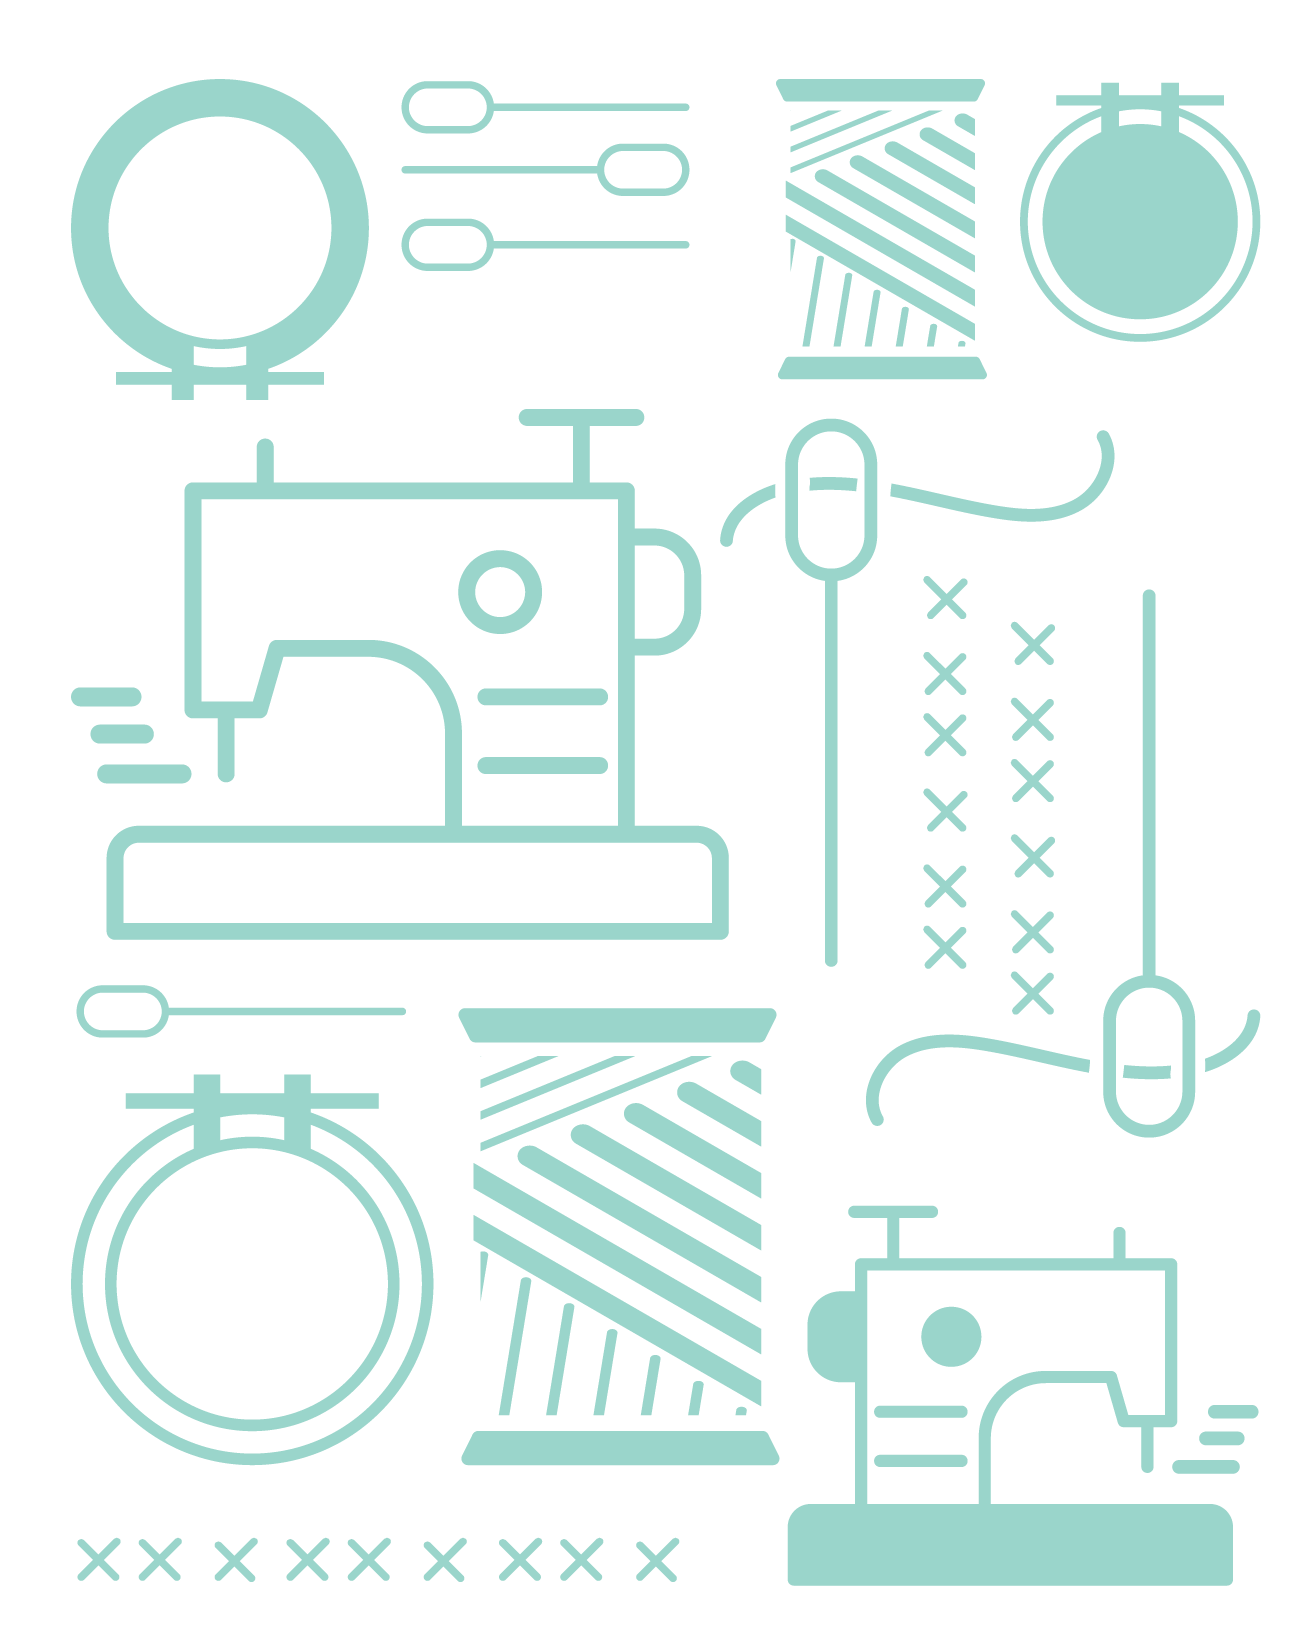 embroidery_graphic-01.png